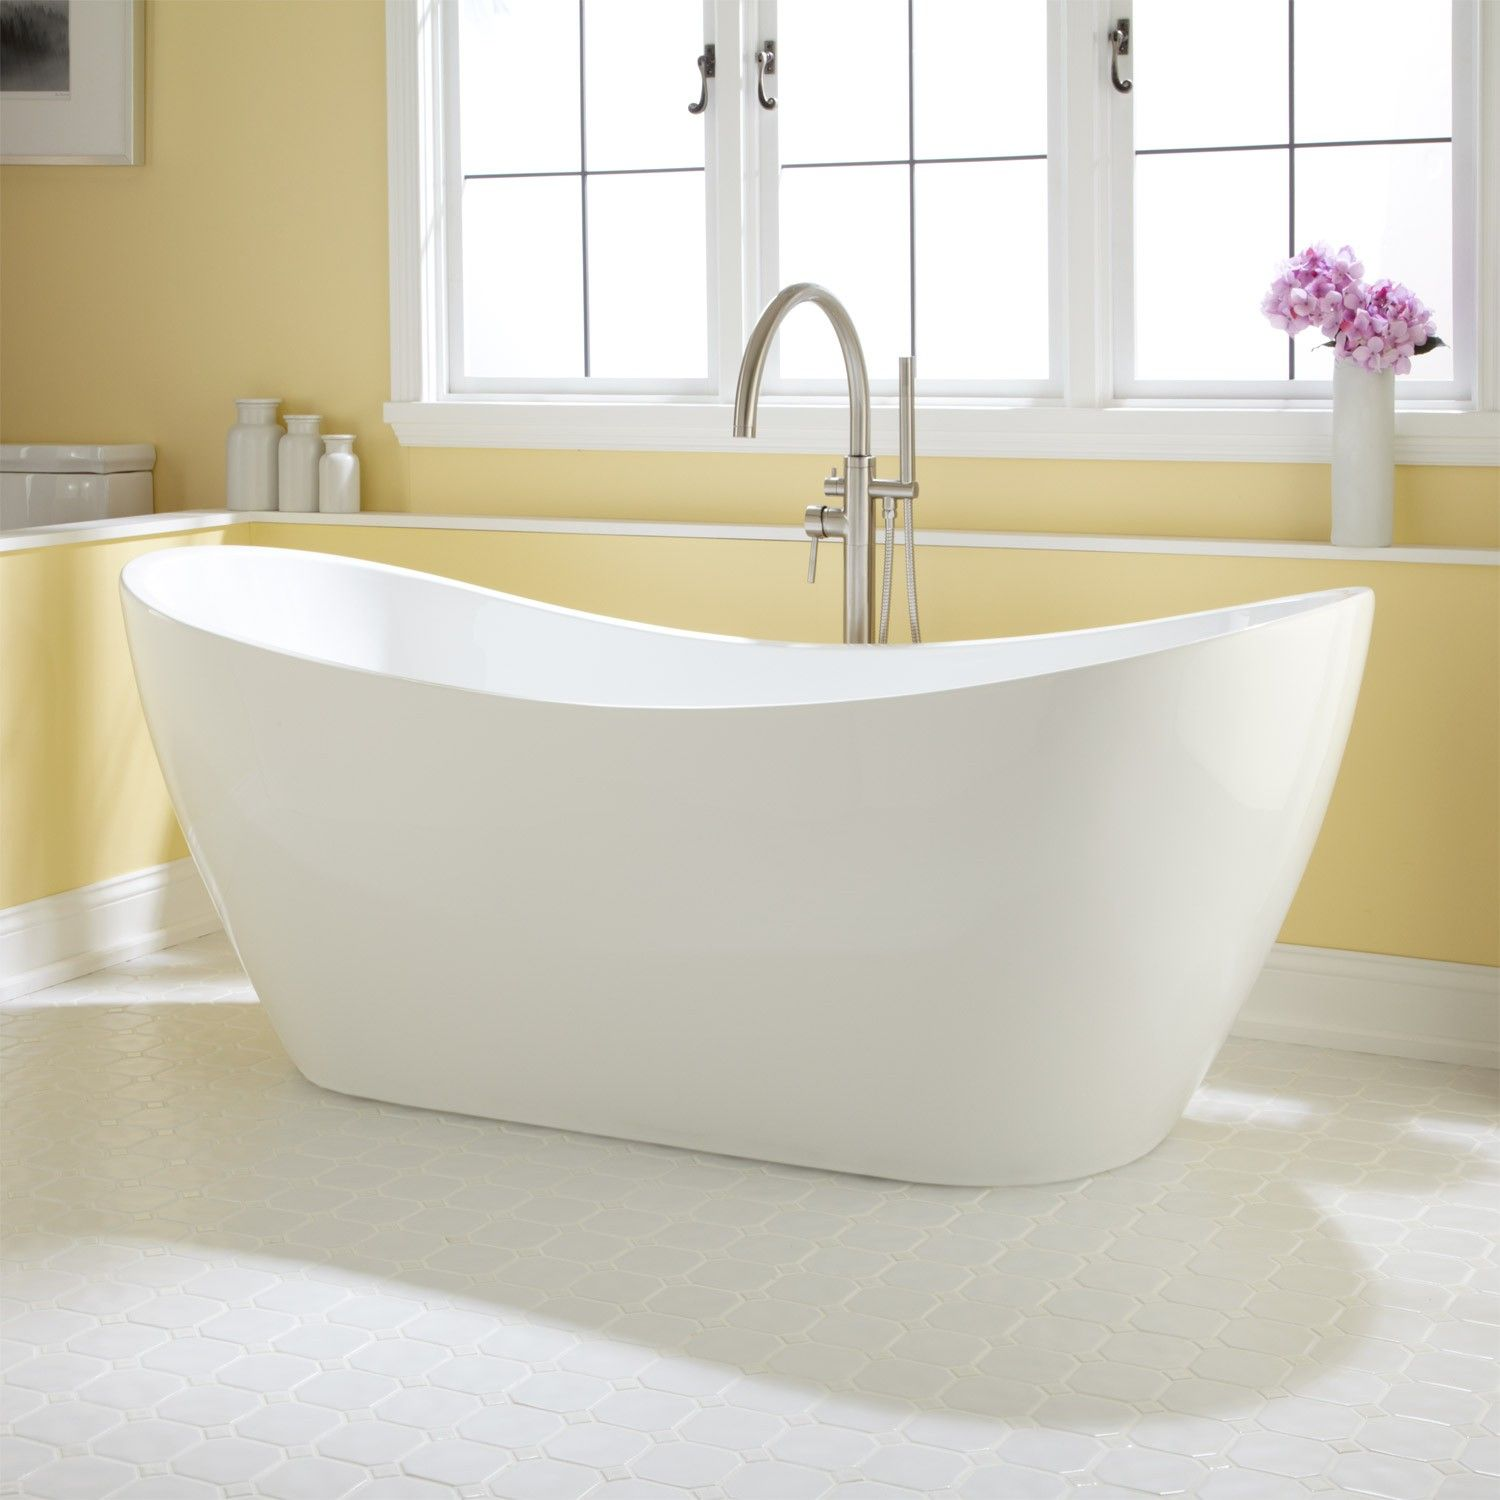 72 sheba acrylic double slipper tub tubs acrylics and hardware Bathroom design ideas with freestanding tub